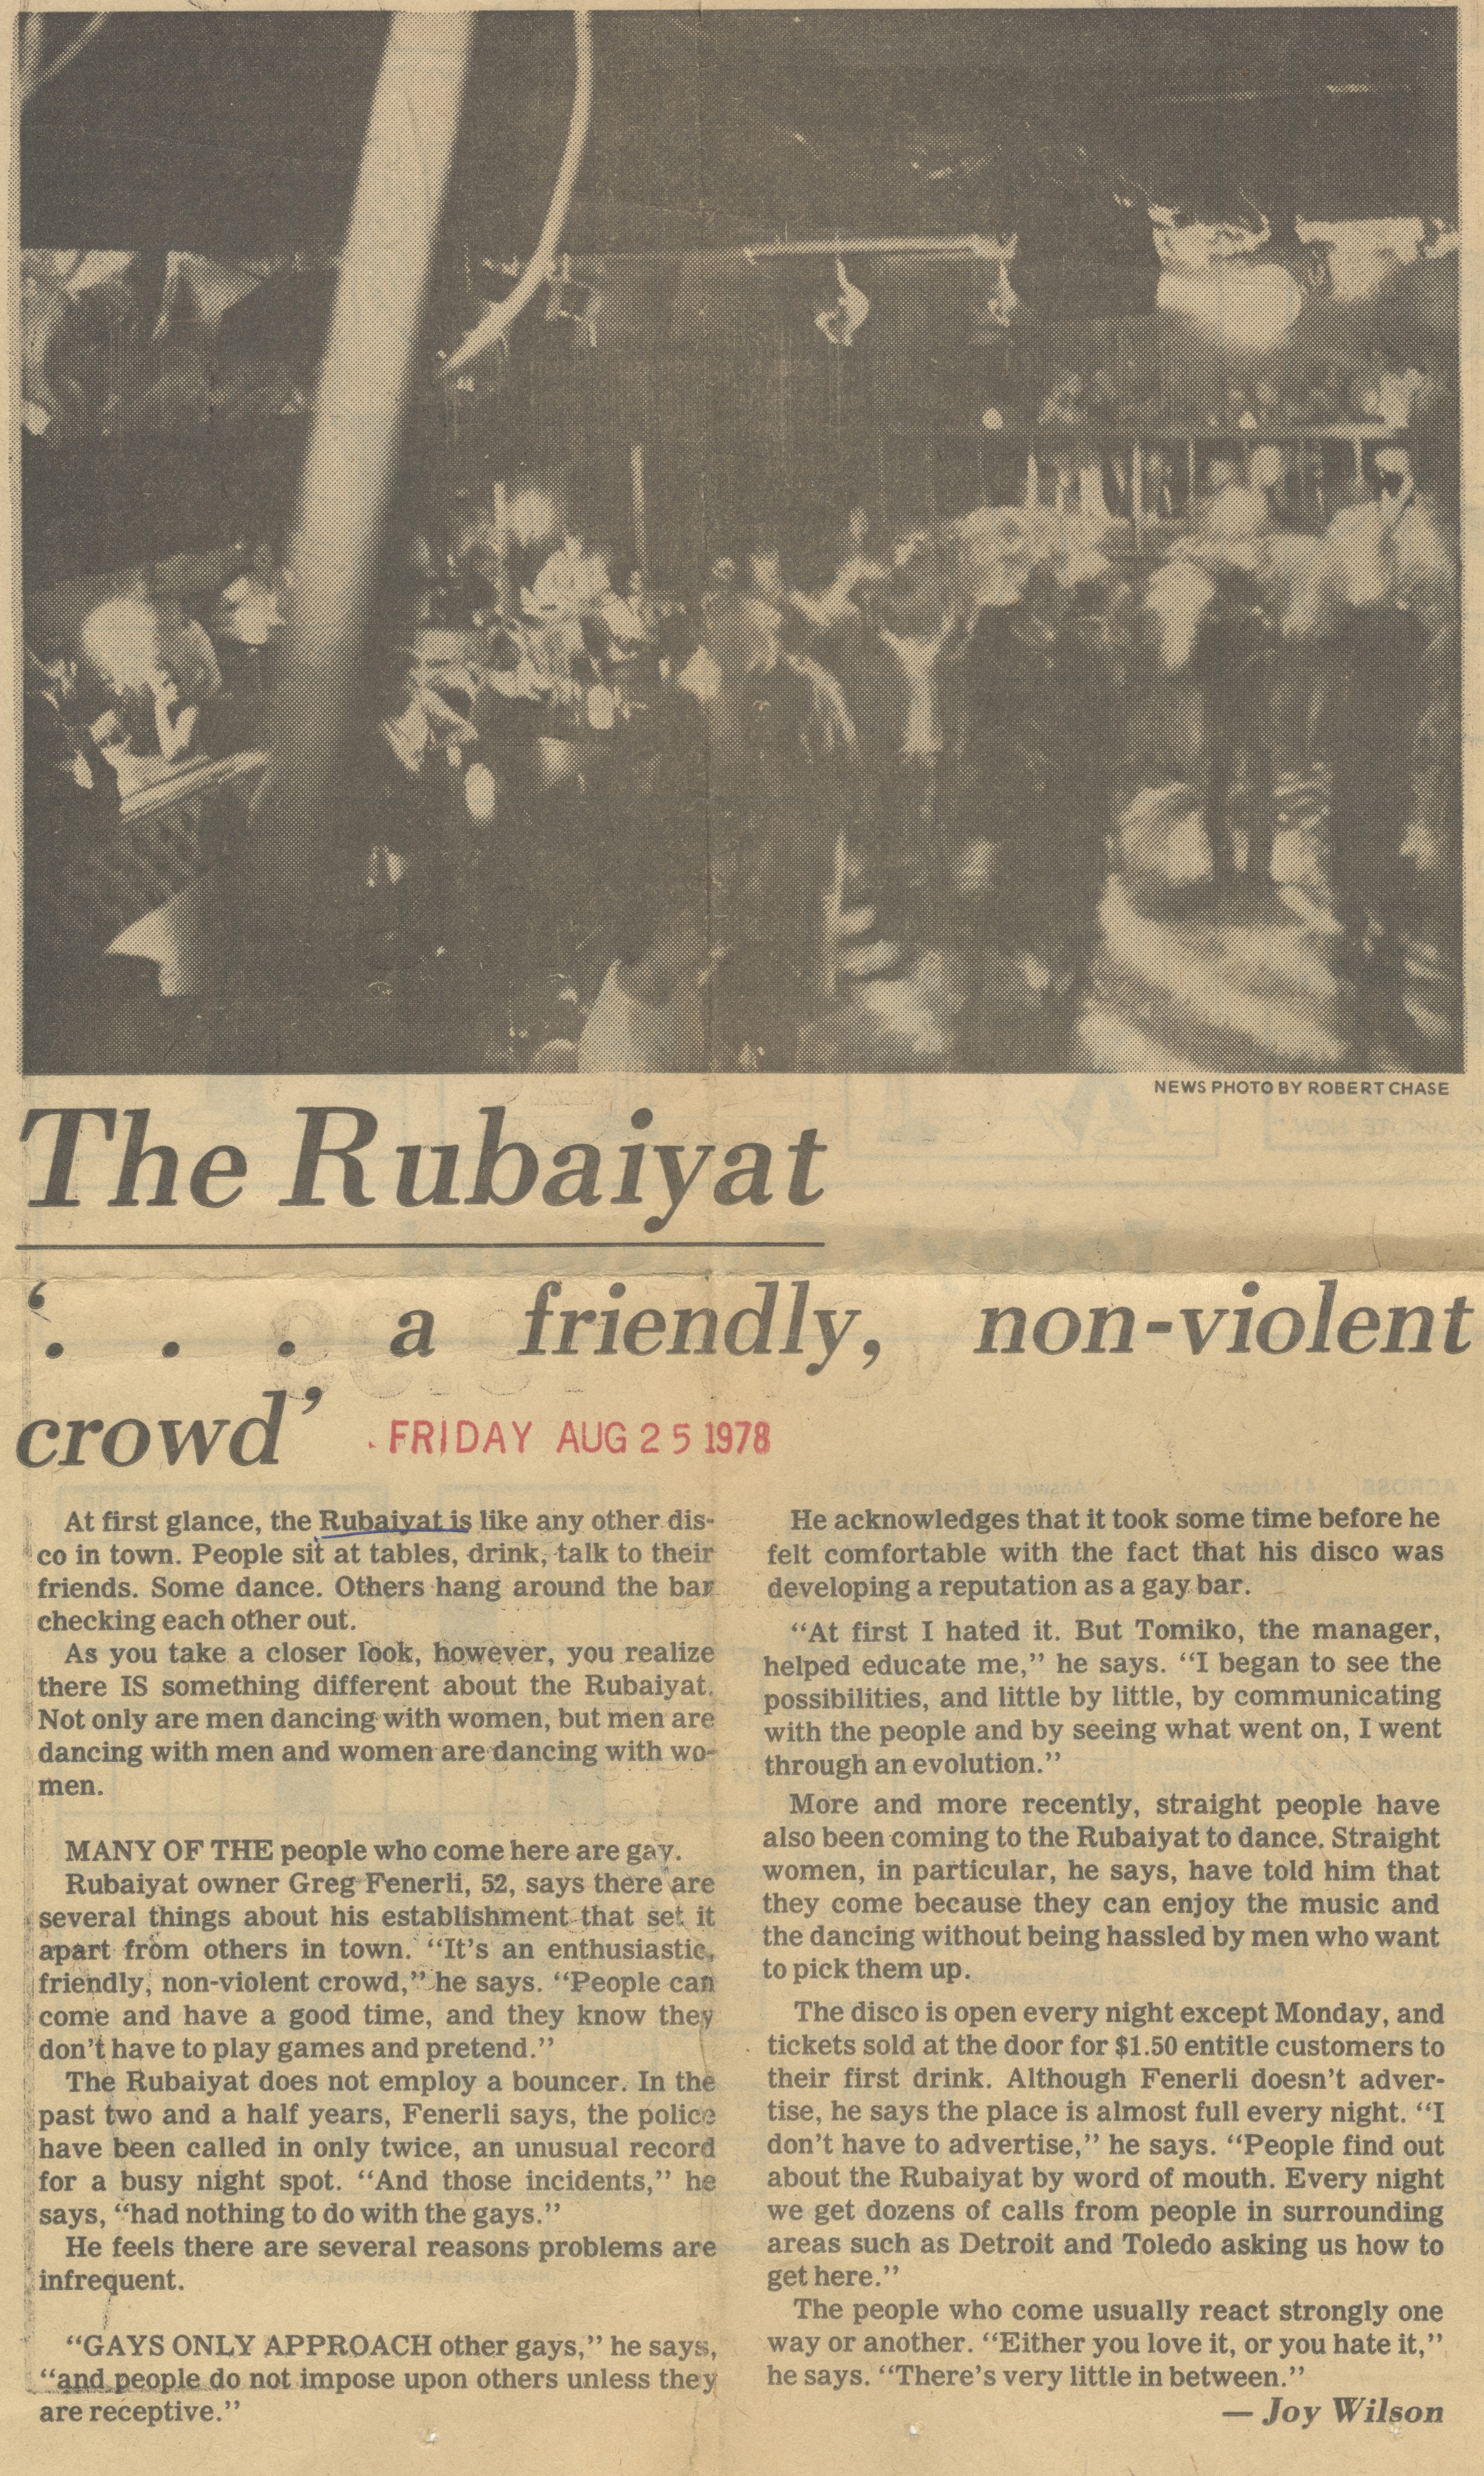 The Rubaiyat '...A Friendly, Non-Violent Crowd' image